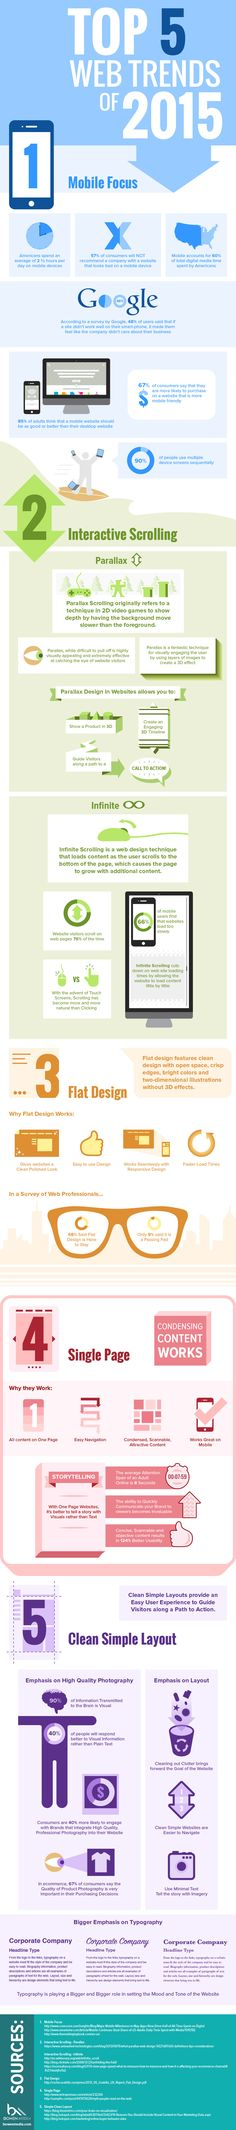 Is your site lagging behind web design trends? (infographic)